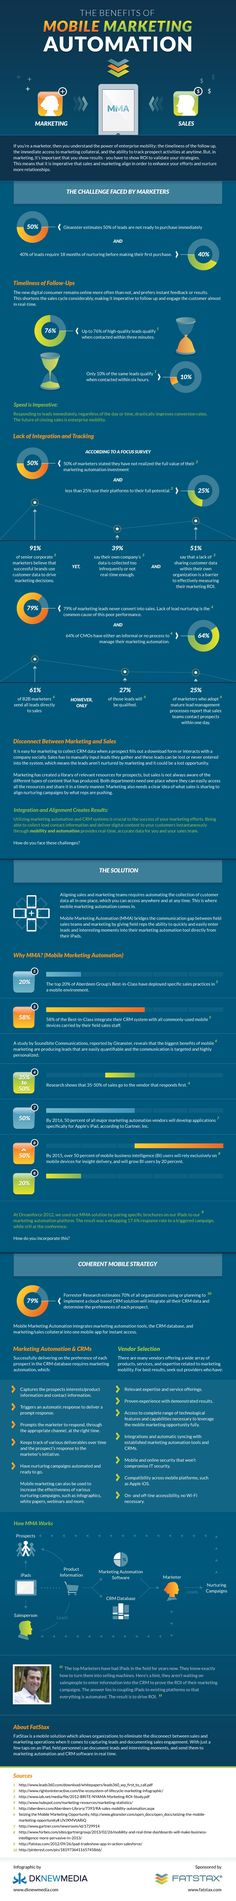 Mobile Marketing Automation Infograph - FatStax